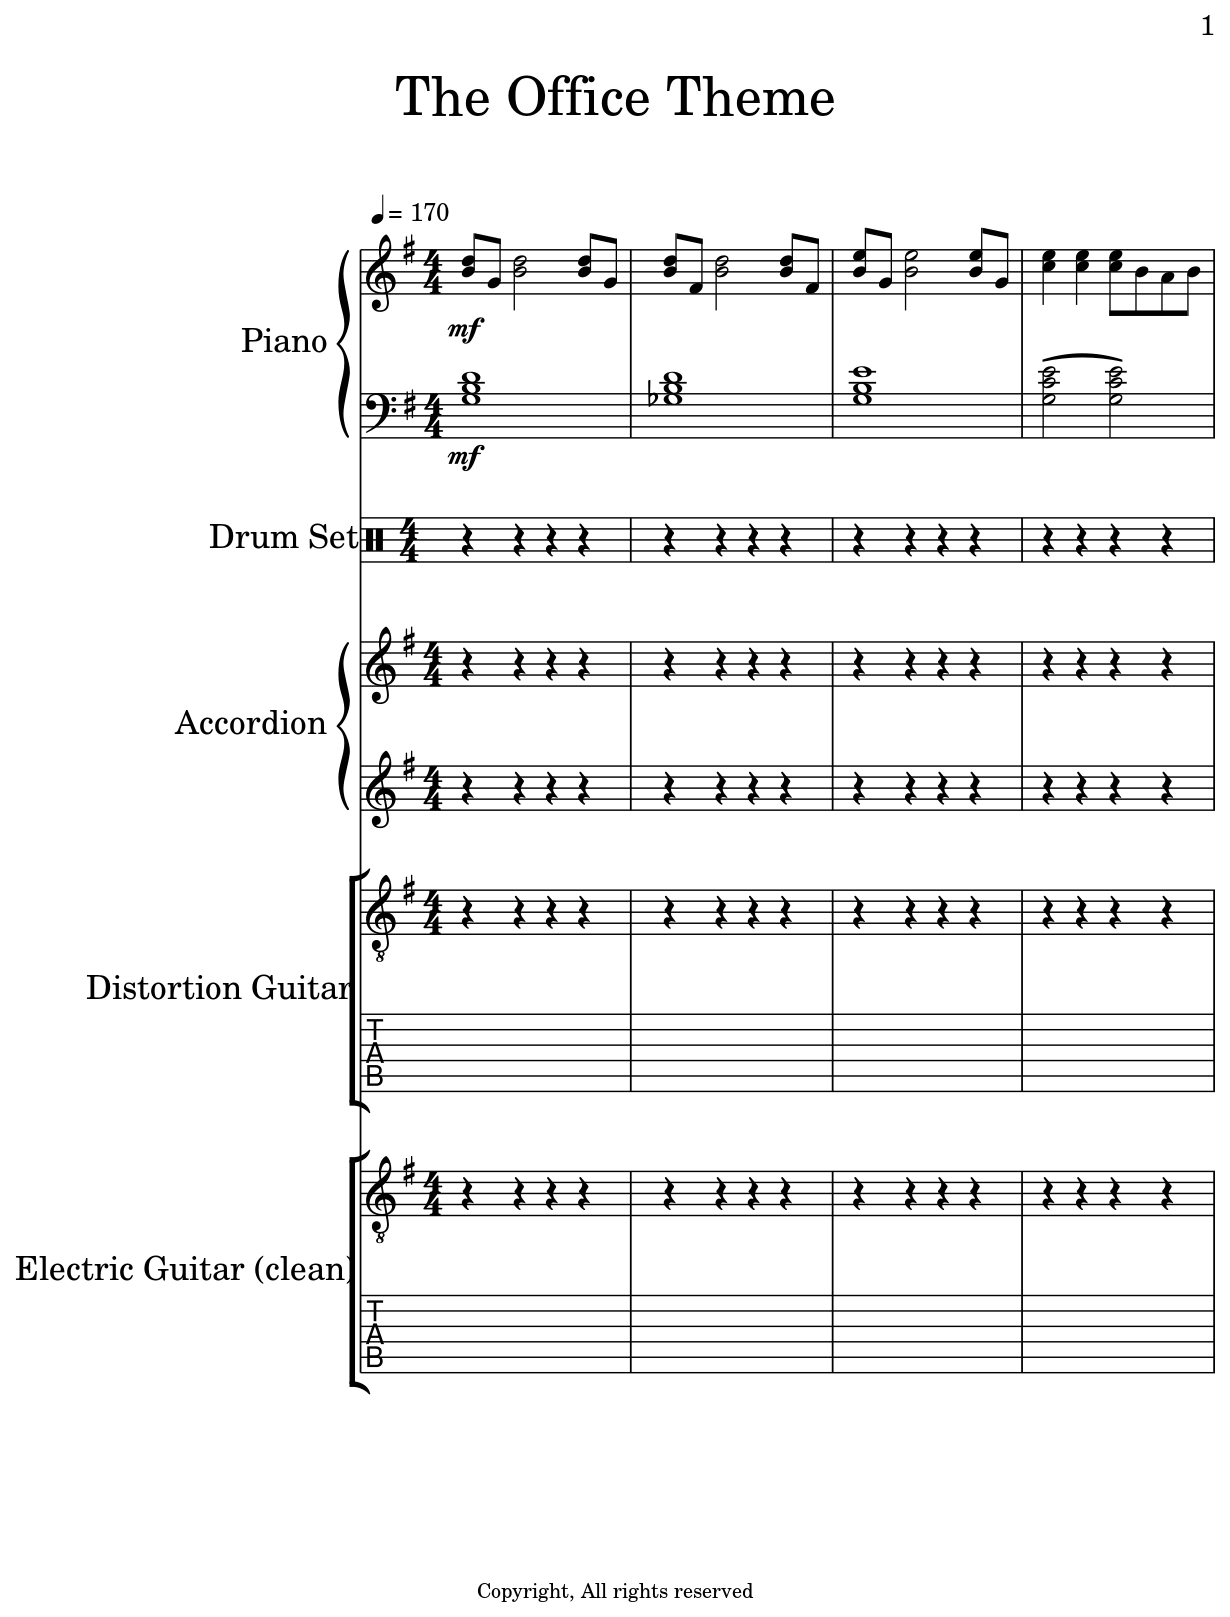 the office theme sheet music for piano drum set accordion distortion guitar electric. Black Bedroom Furniture Sets. Home Design Ideas